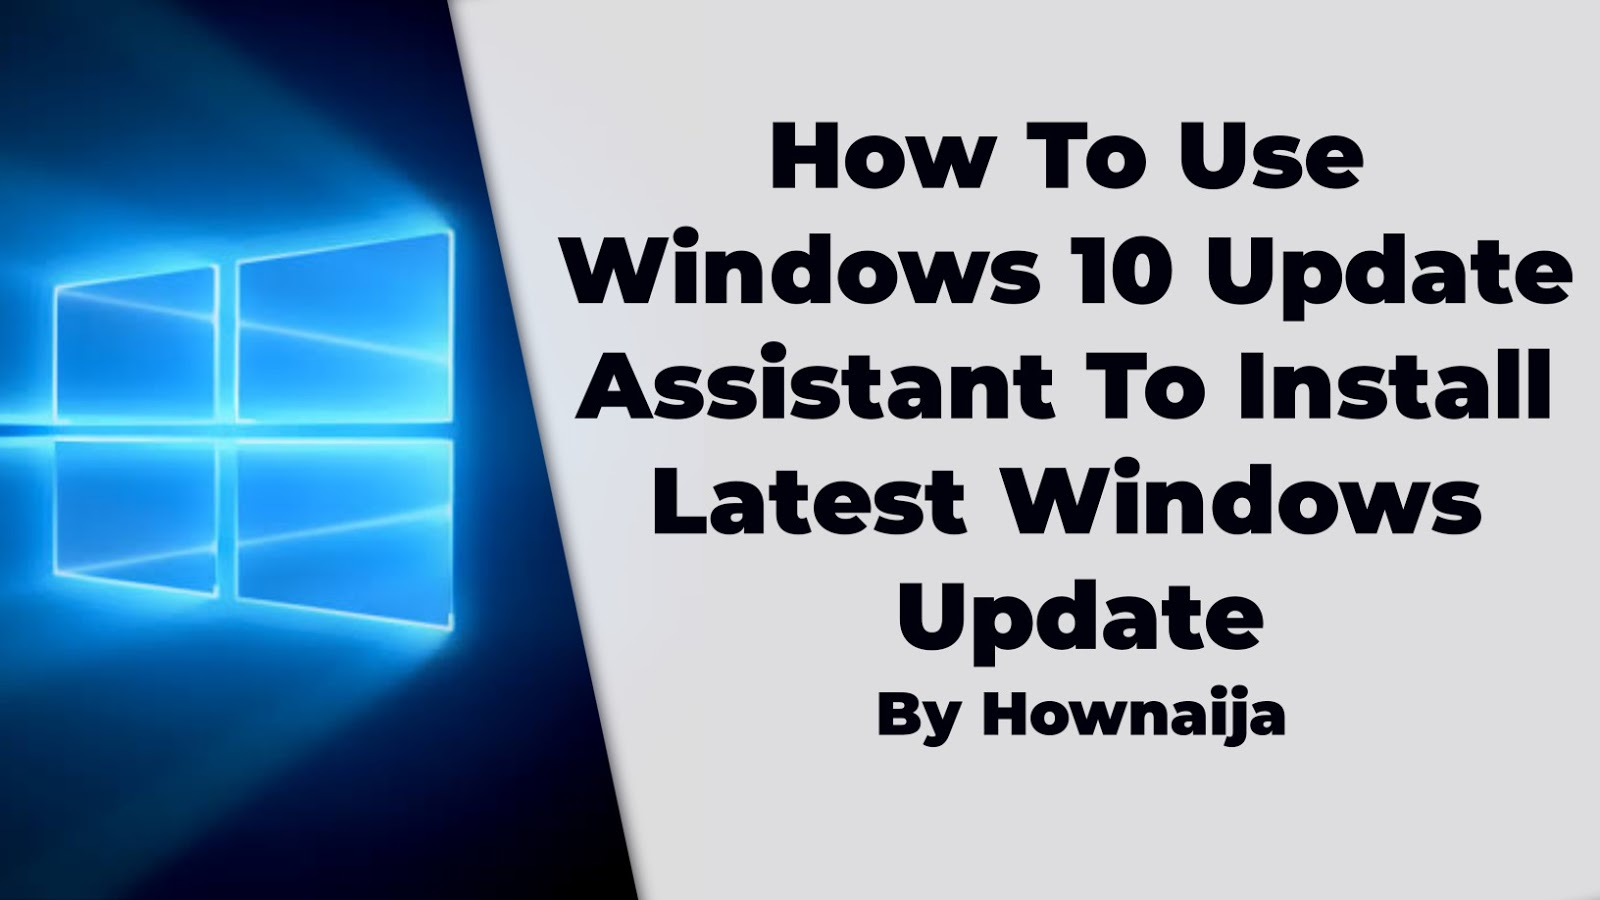 How To Use Windows 10 Update Assistant To Install Latest Windows Update